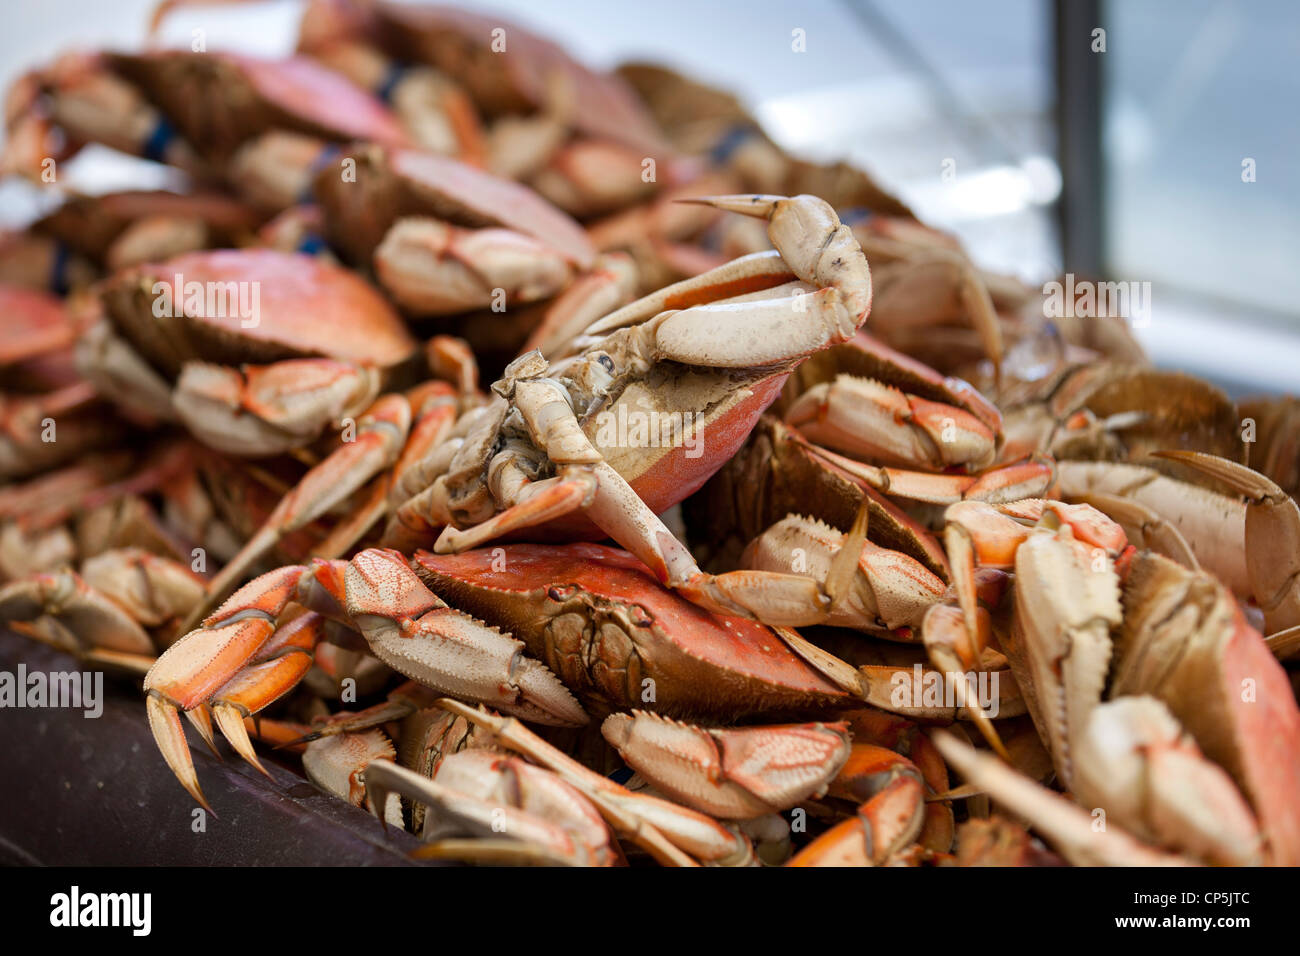 Steamed dungeness crabs - Stock Image